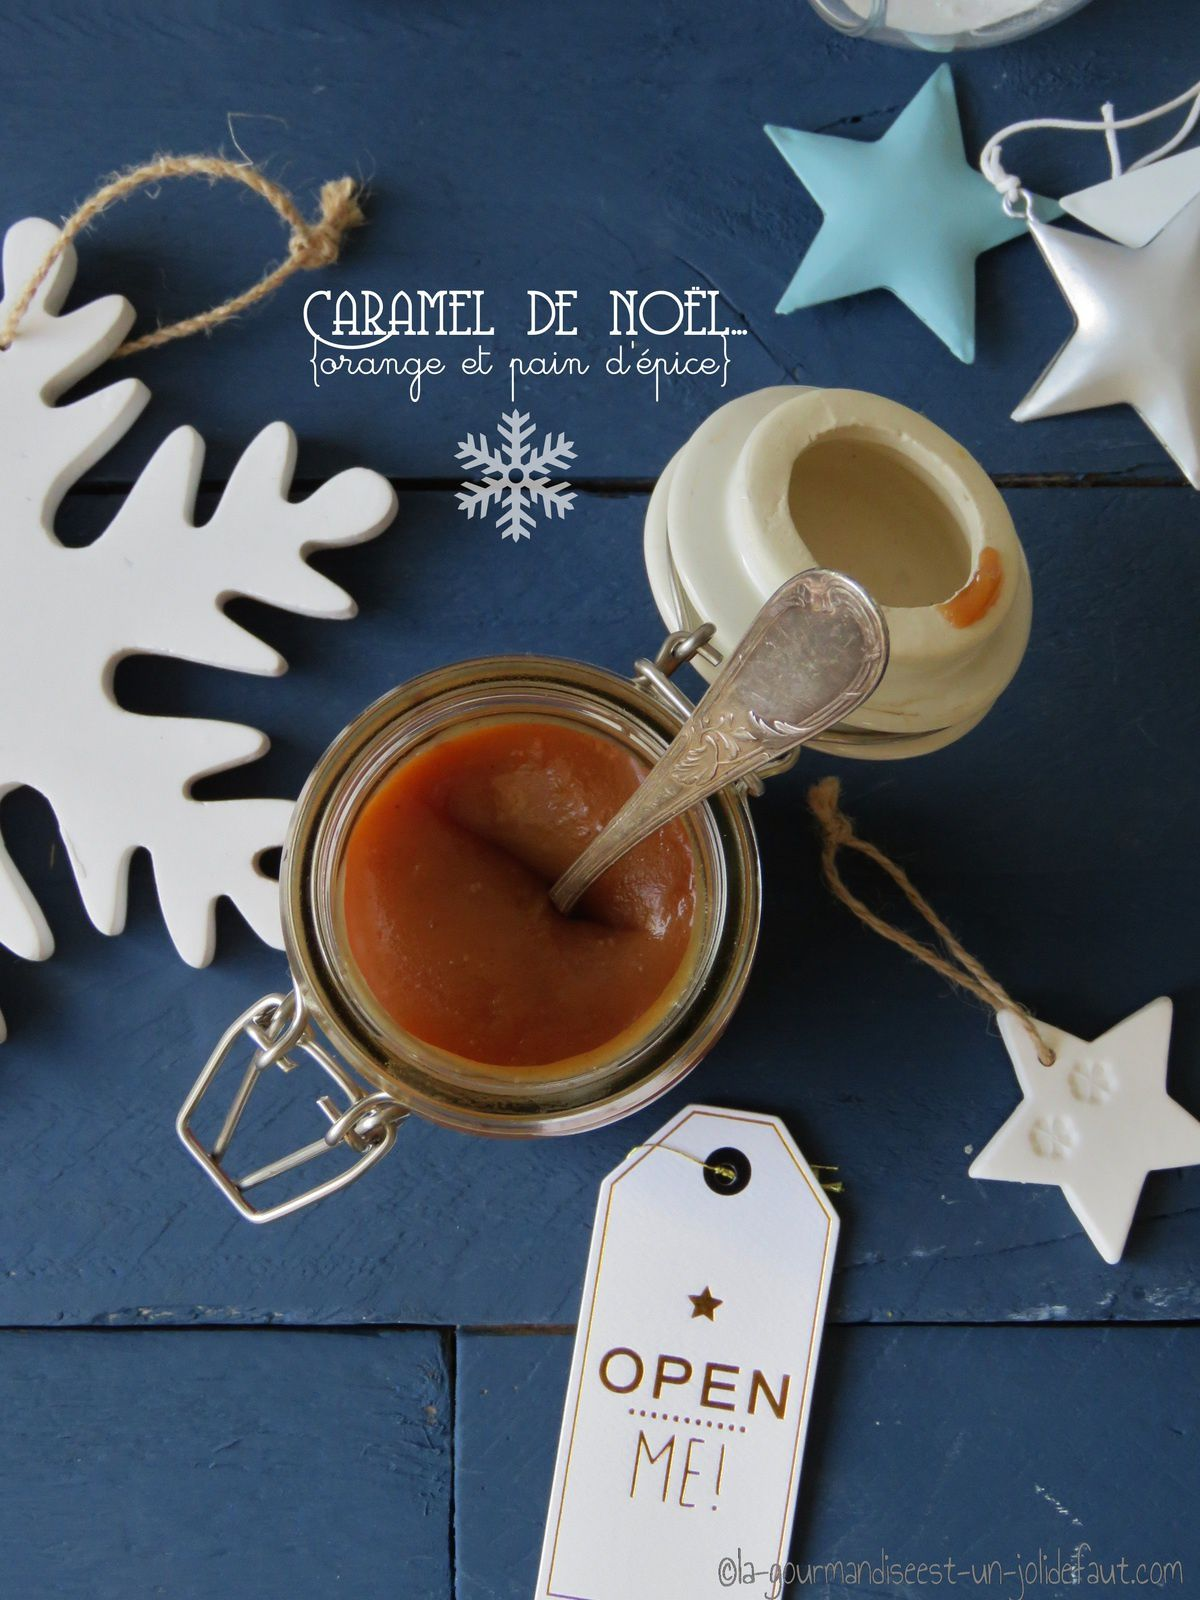 Caramel de noël {orange et épices à pain d'épice}